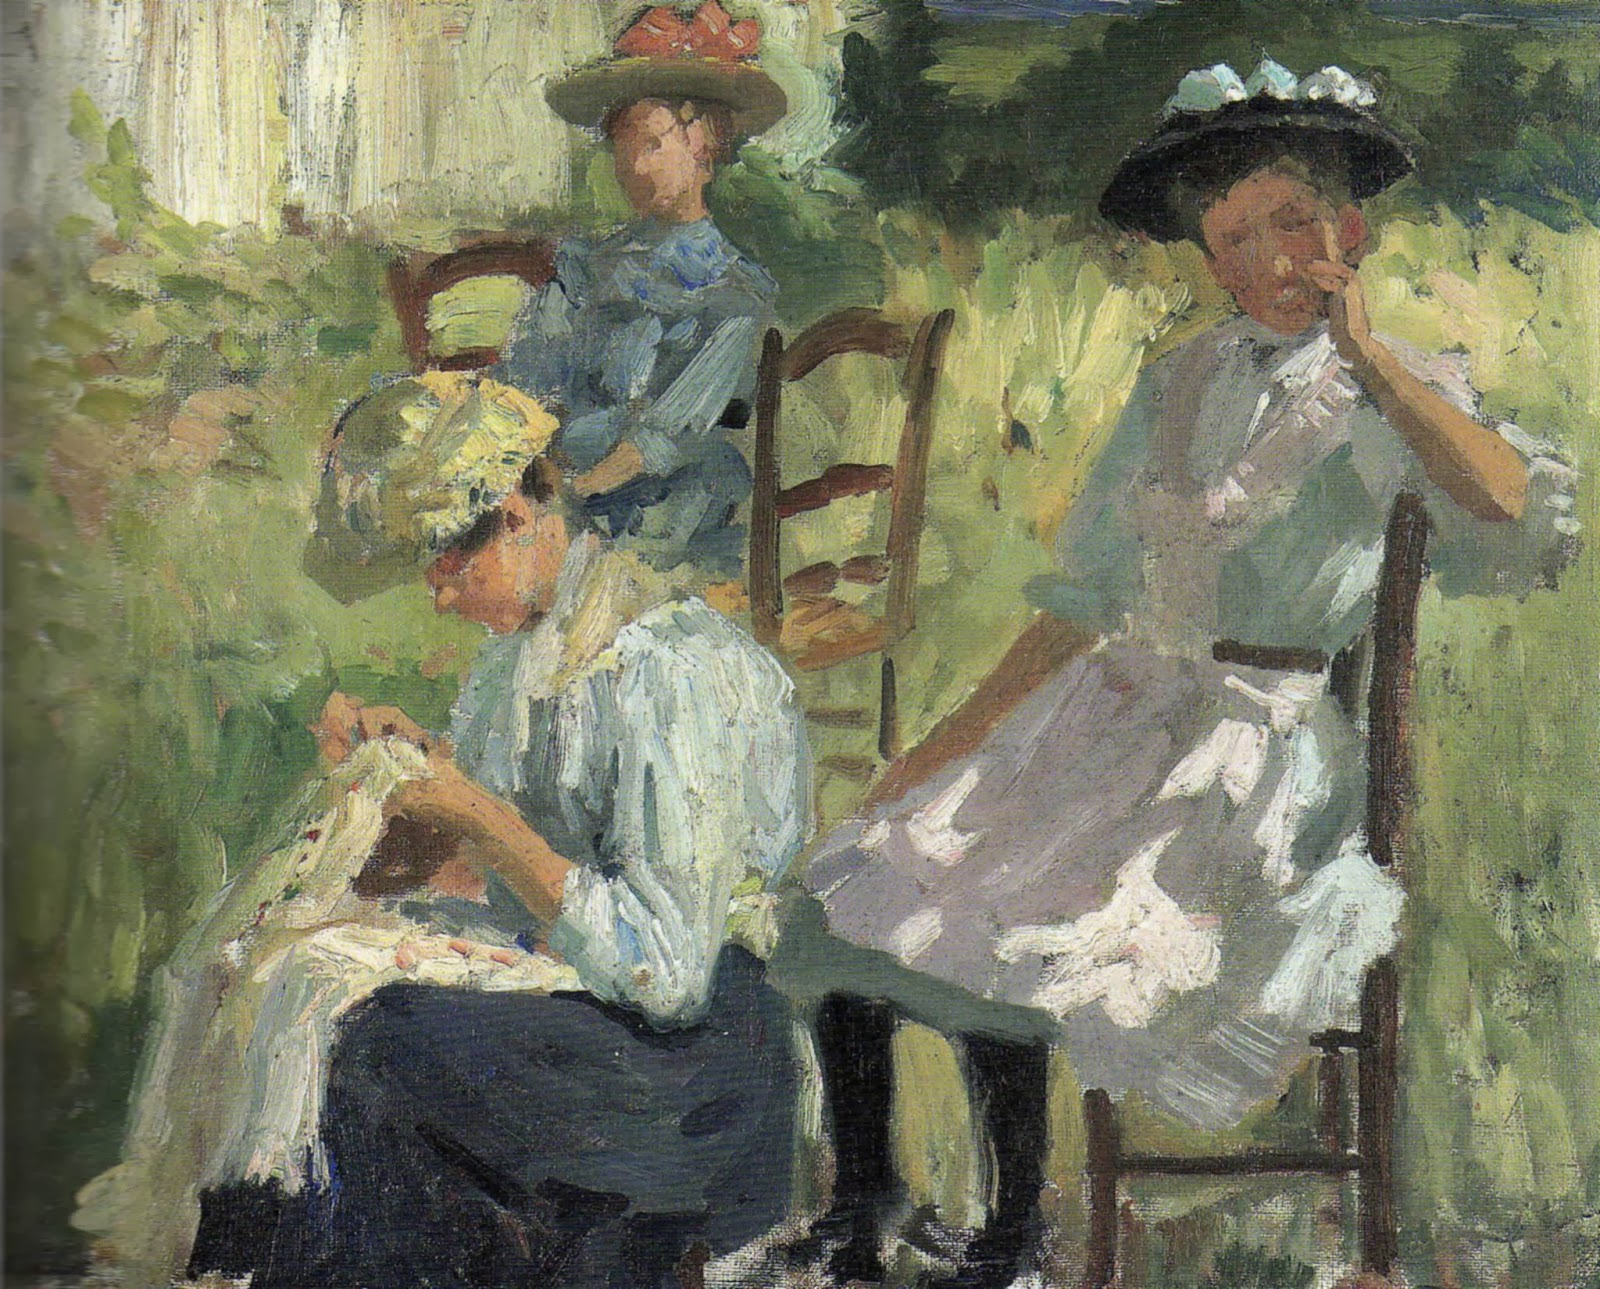 Adolphe  Valette  Louise  Sewing  with  Two  Friends